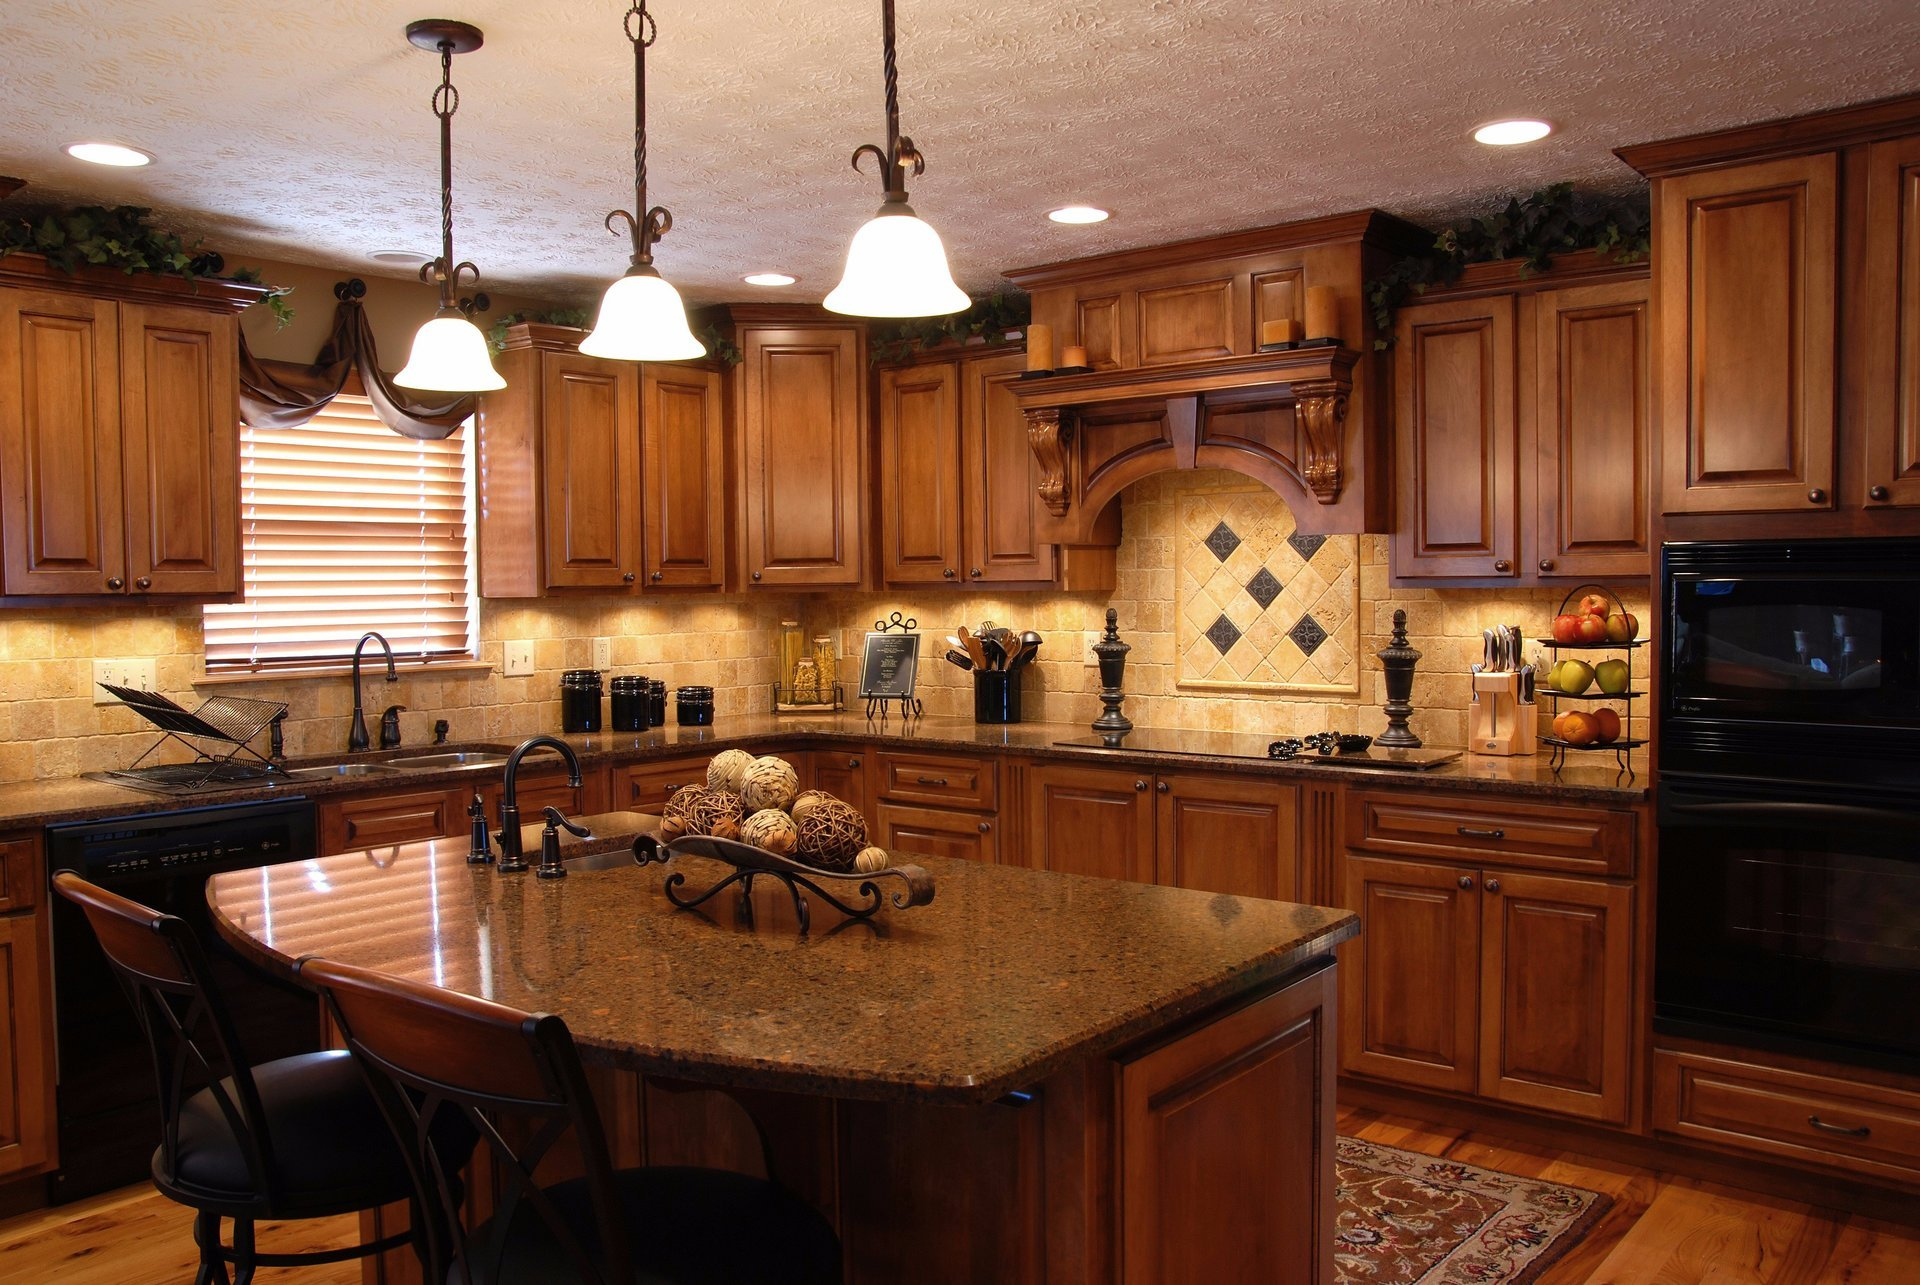 craftsman-style custom kitchen cabinets PRZYQTC